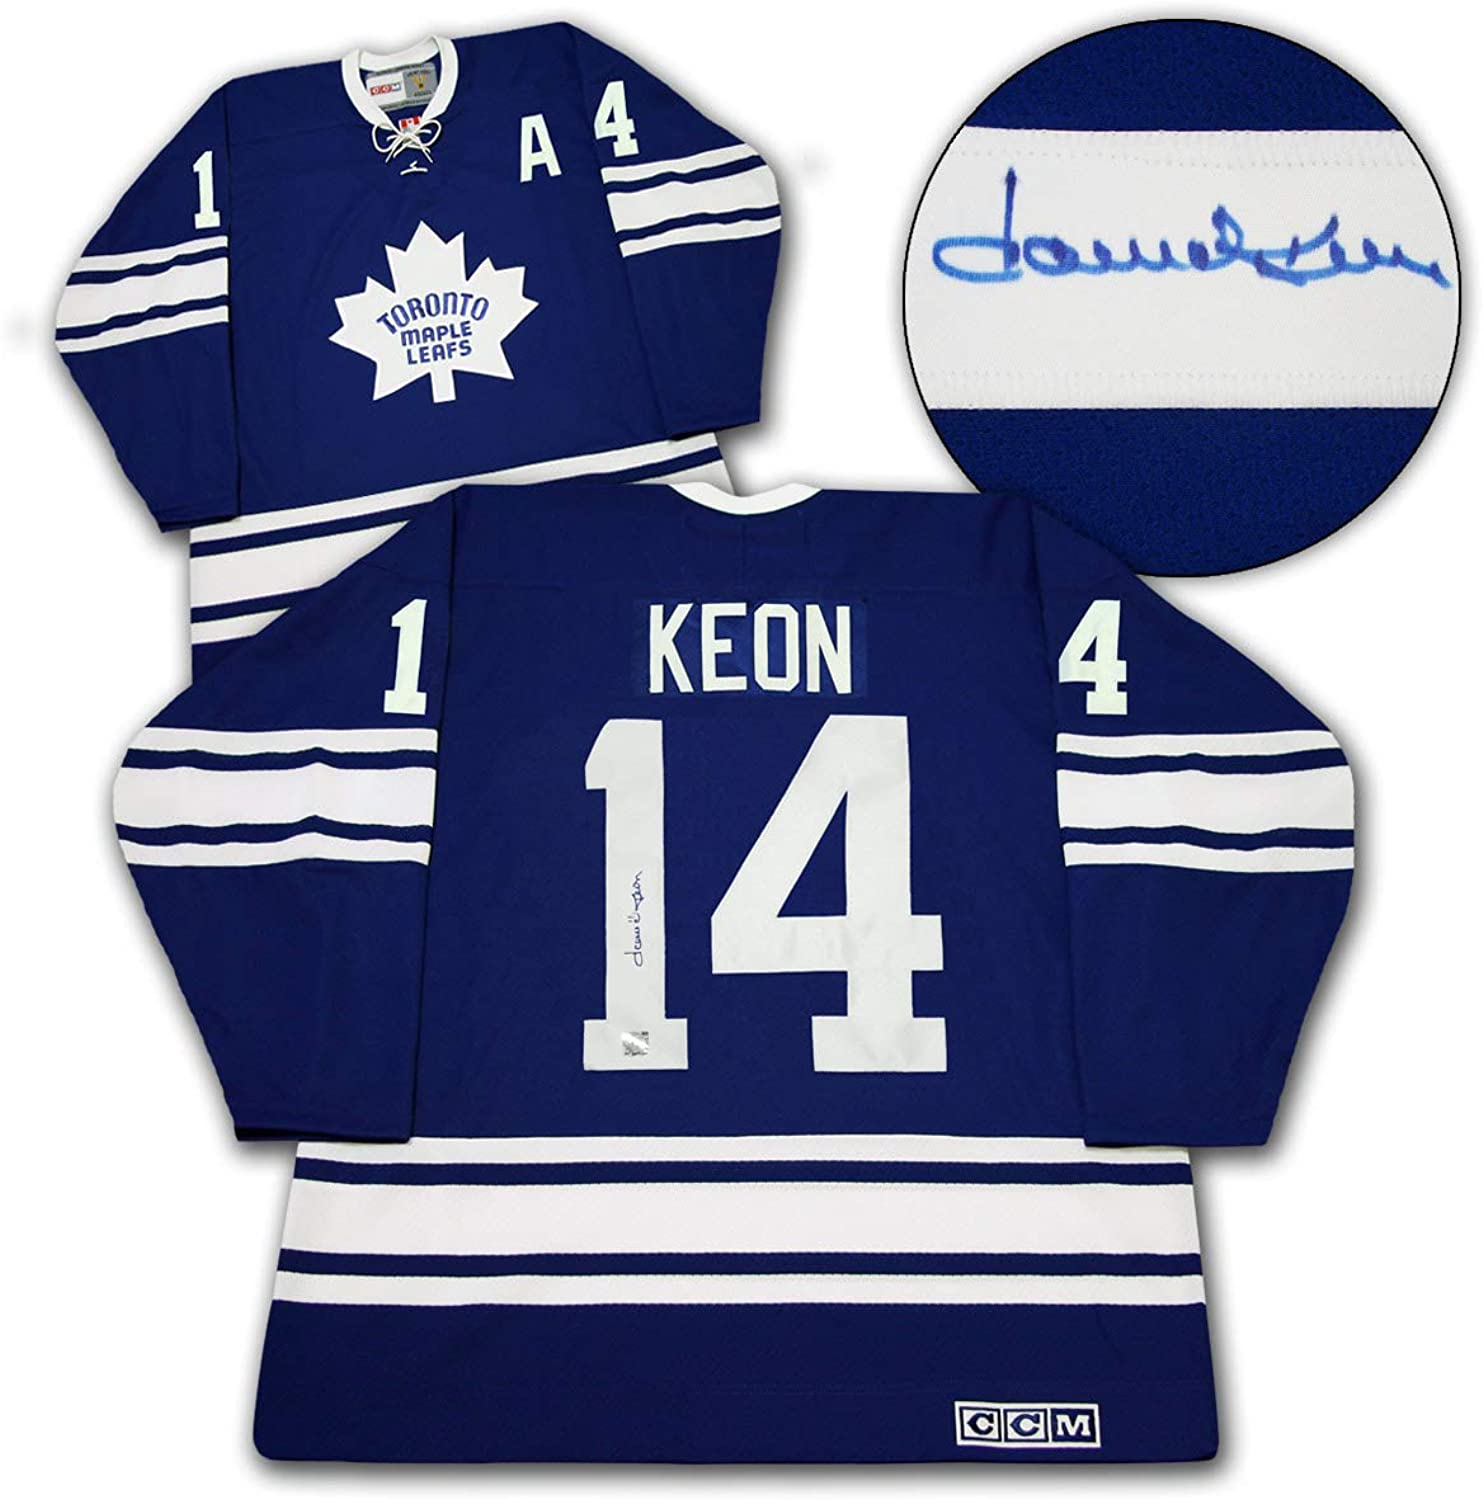 Dave Keon Tgoldnto Maple Leafs Signed 1967 Stanley Cup CCM Vintage Hockey Jersey